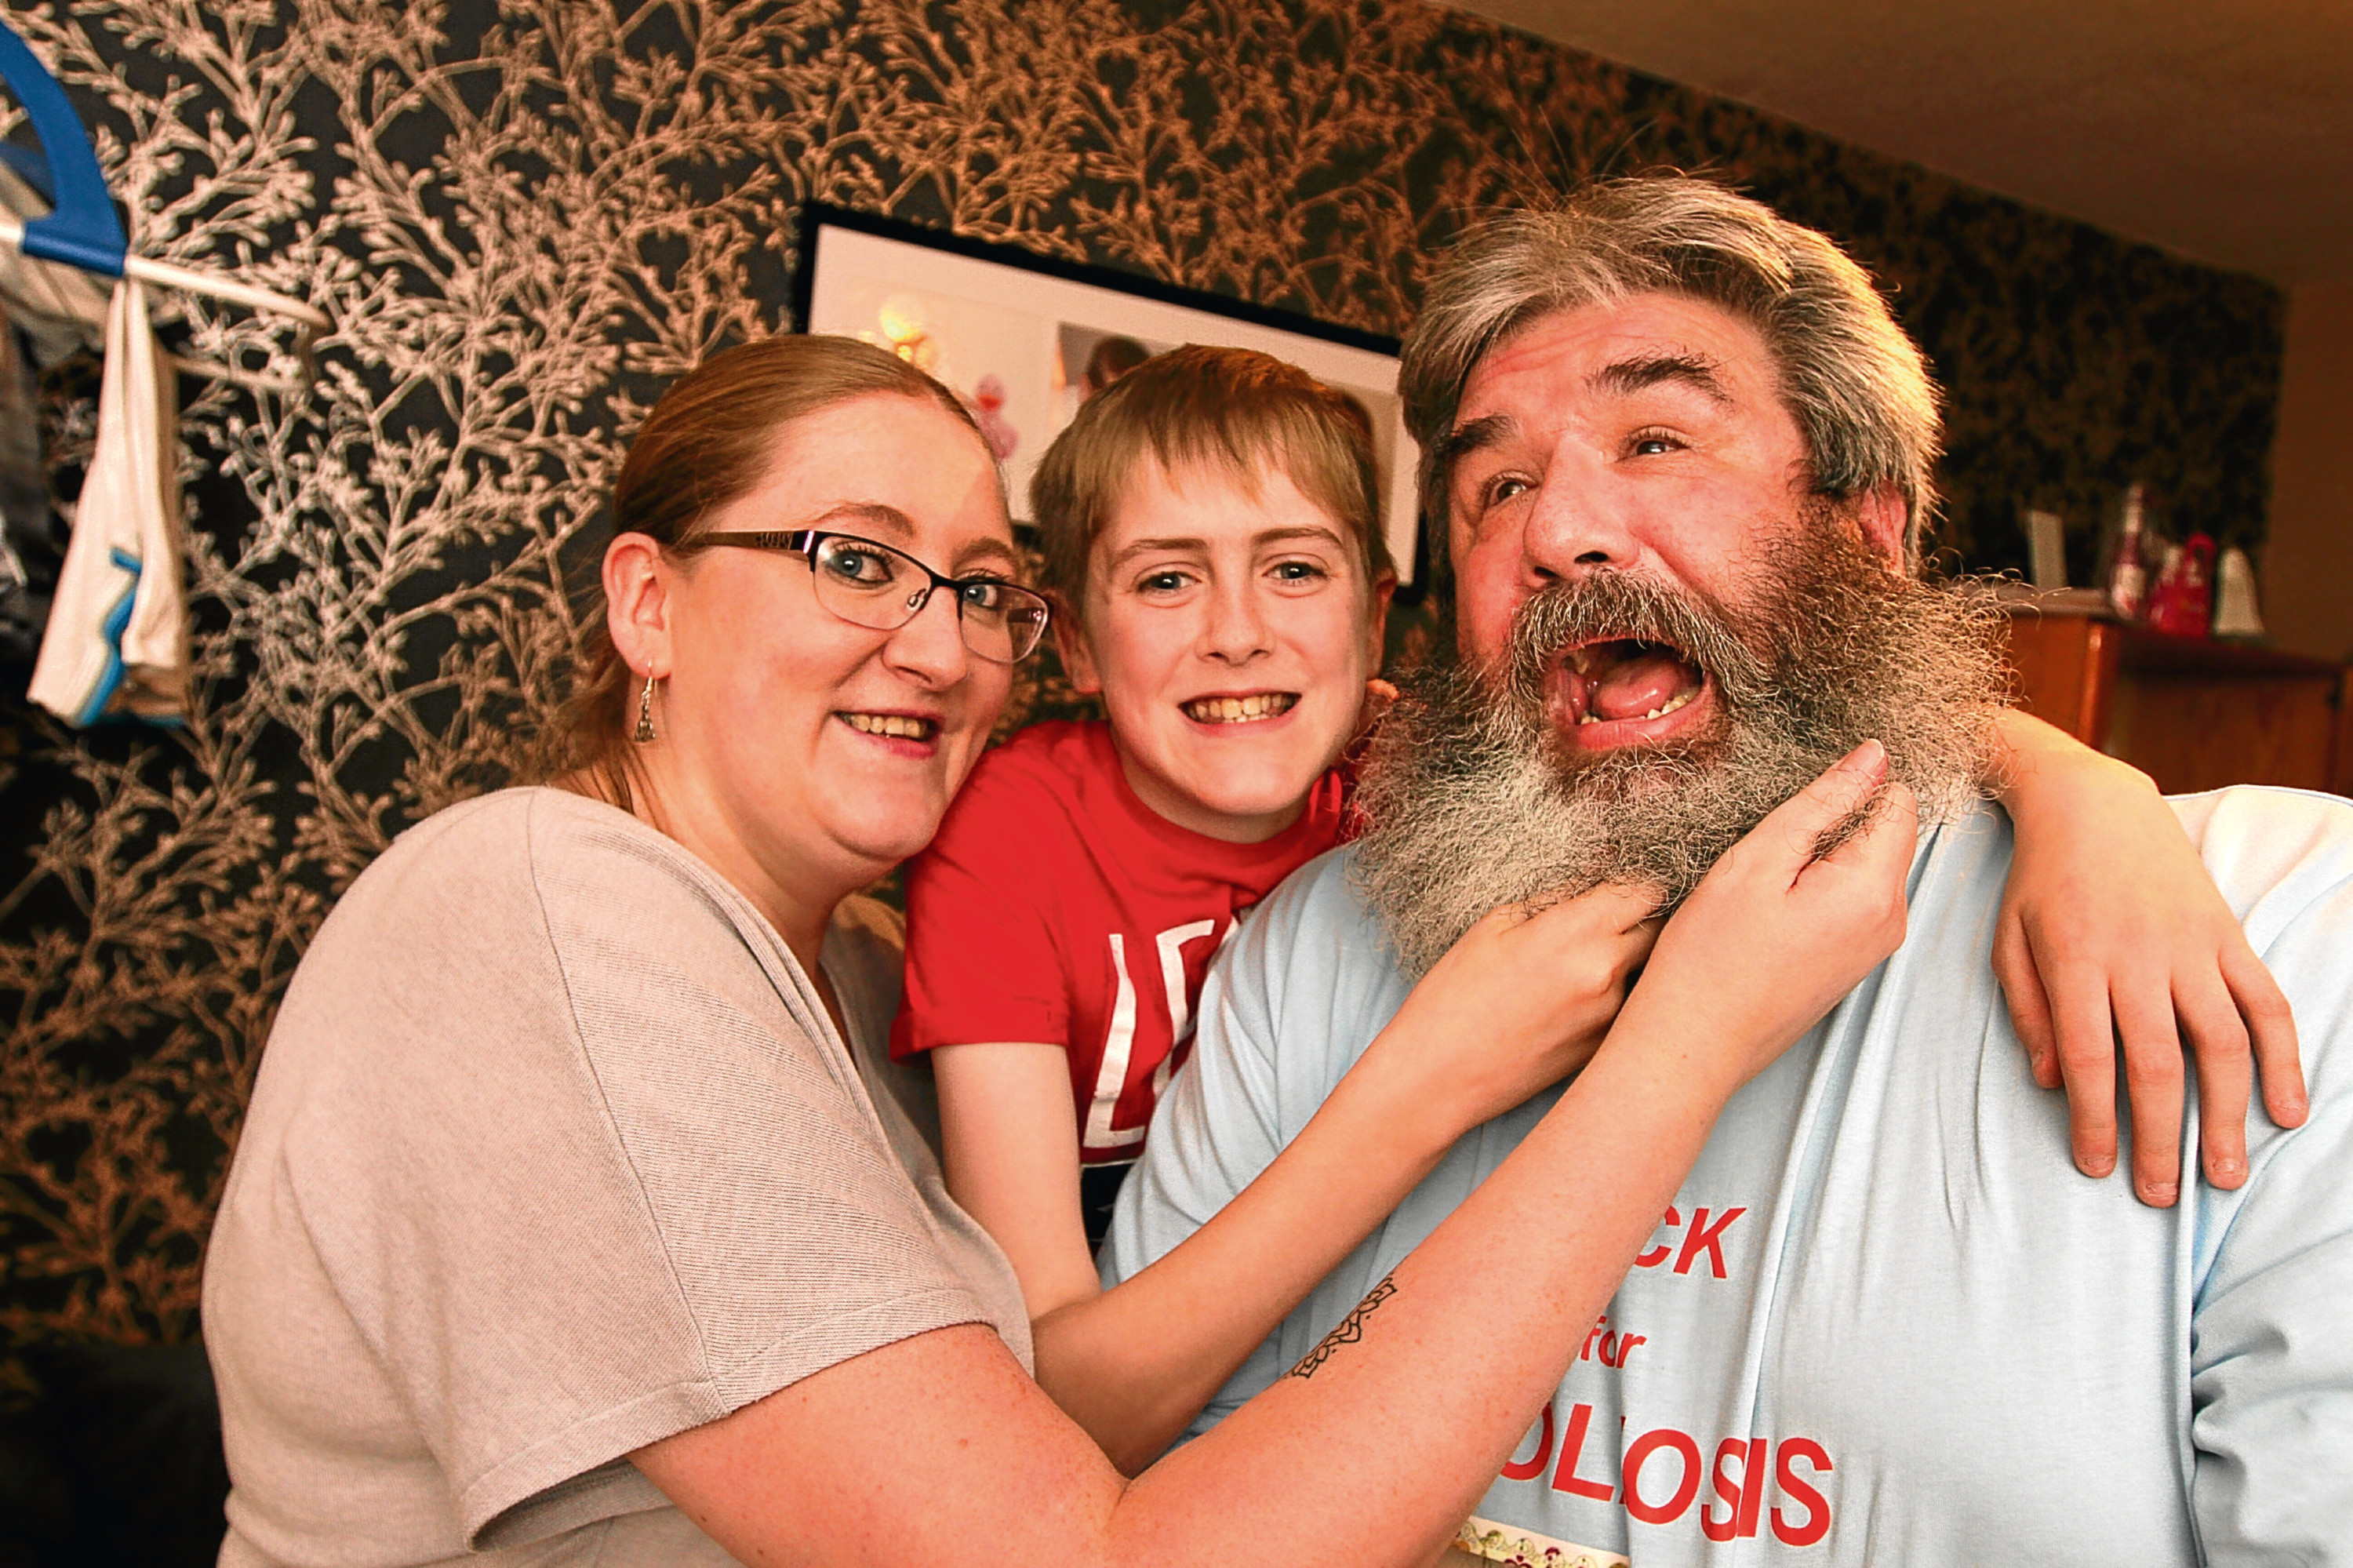 Nathan with his grandad Nick and mum Nikki. Nick has decided to go unshaven in a bid to raise cash for those who helped look after his grandson.